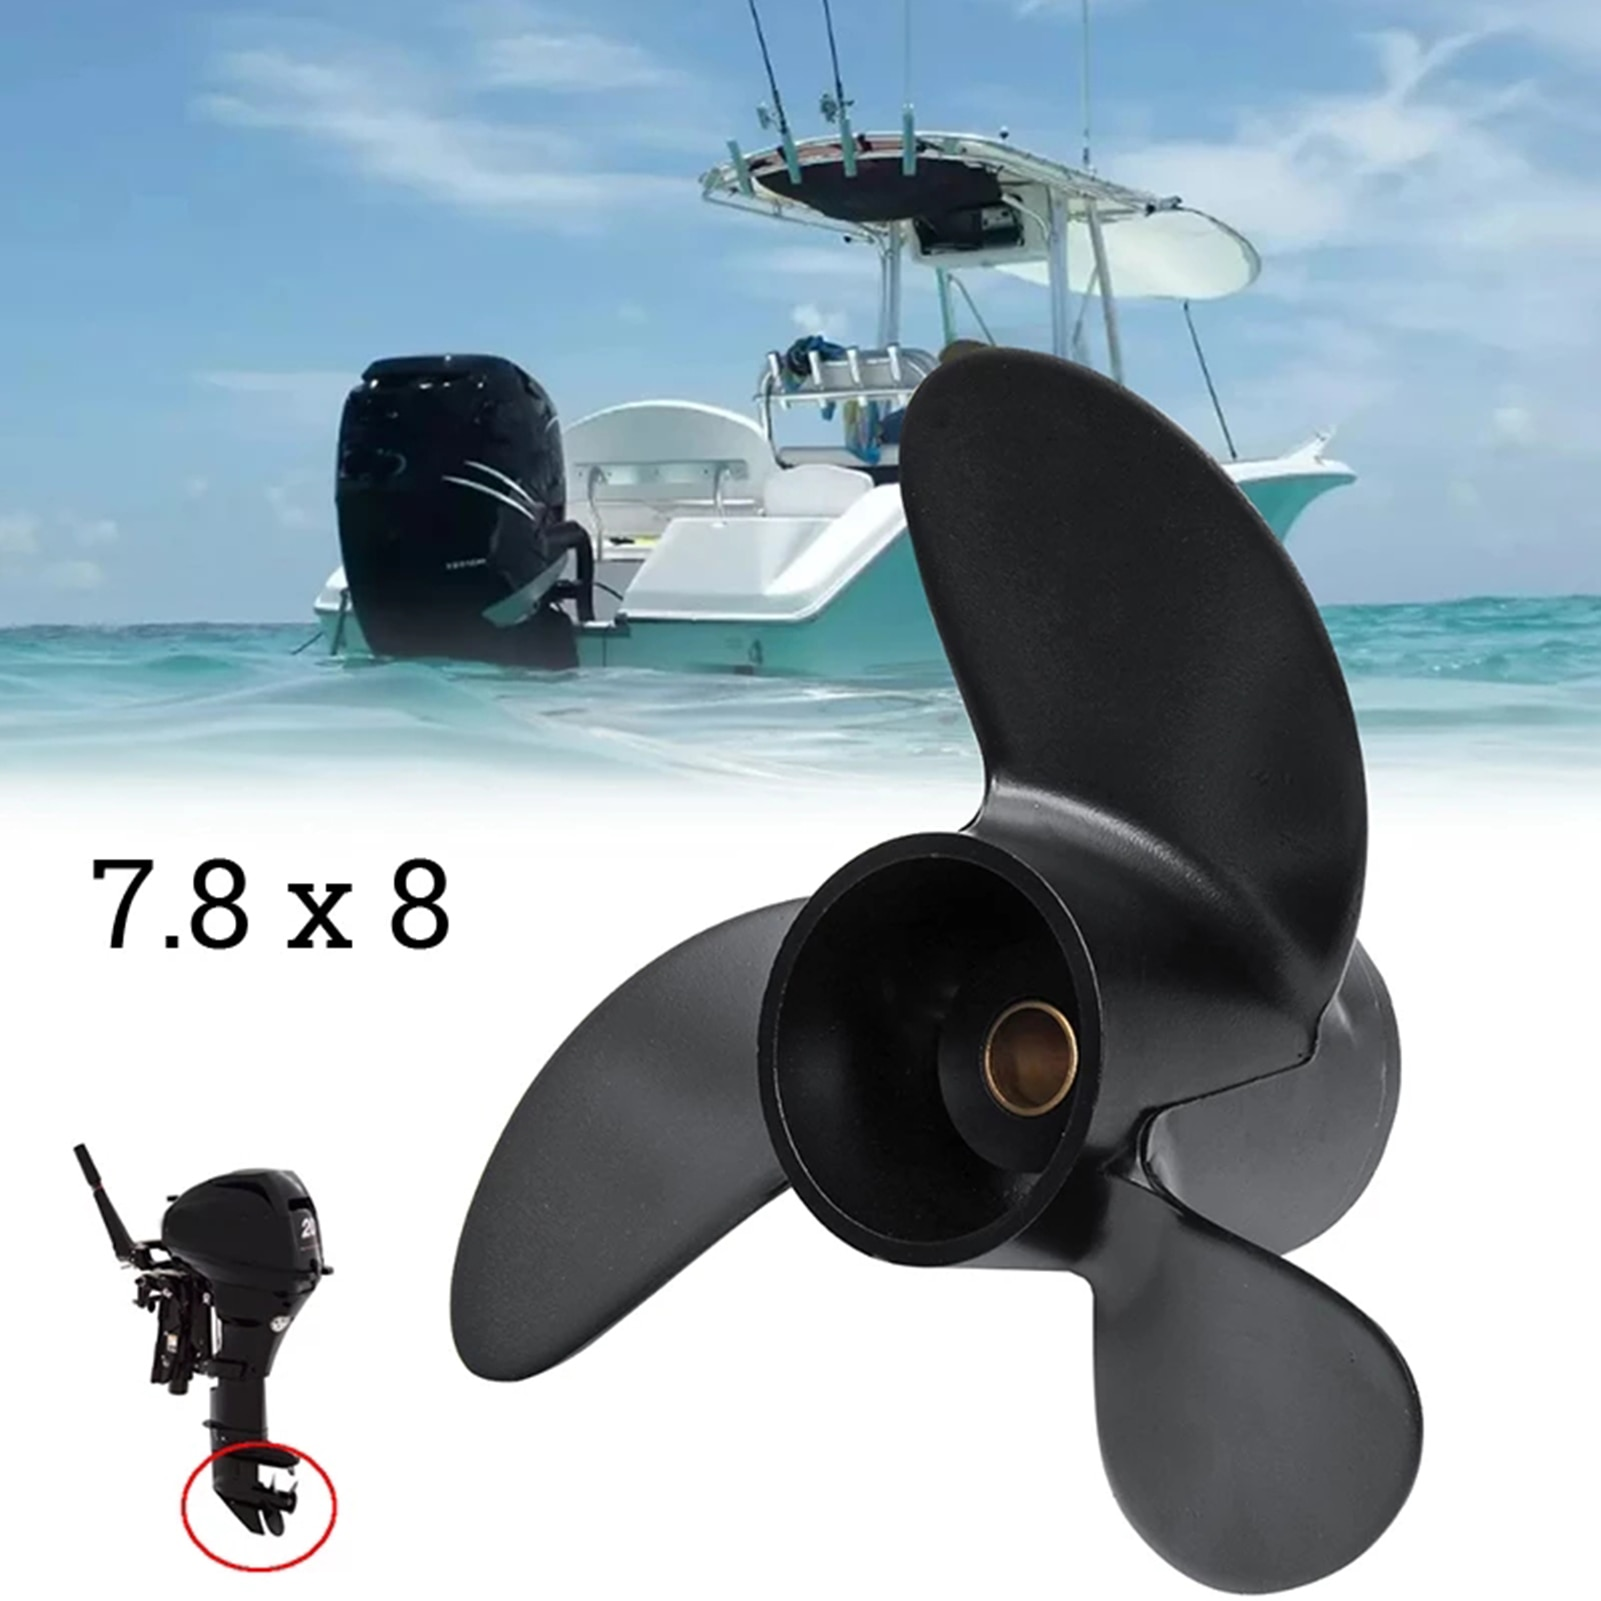 Marine Outboard Propeller Boat For 7.8x8 Balck Aluminum Alloy Screw 3 Blade Boat Engine Parts Replacement Accessories Wondeful sea and fresh water cooled and heat exchanger for weifang 495 k4100 marine engine boat engine parts